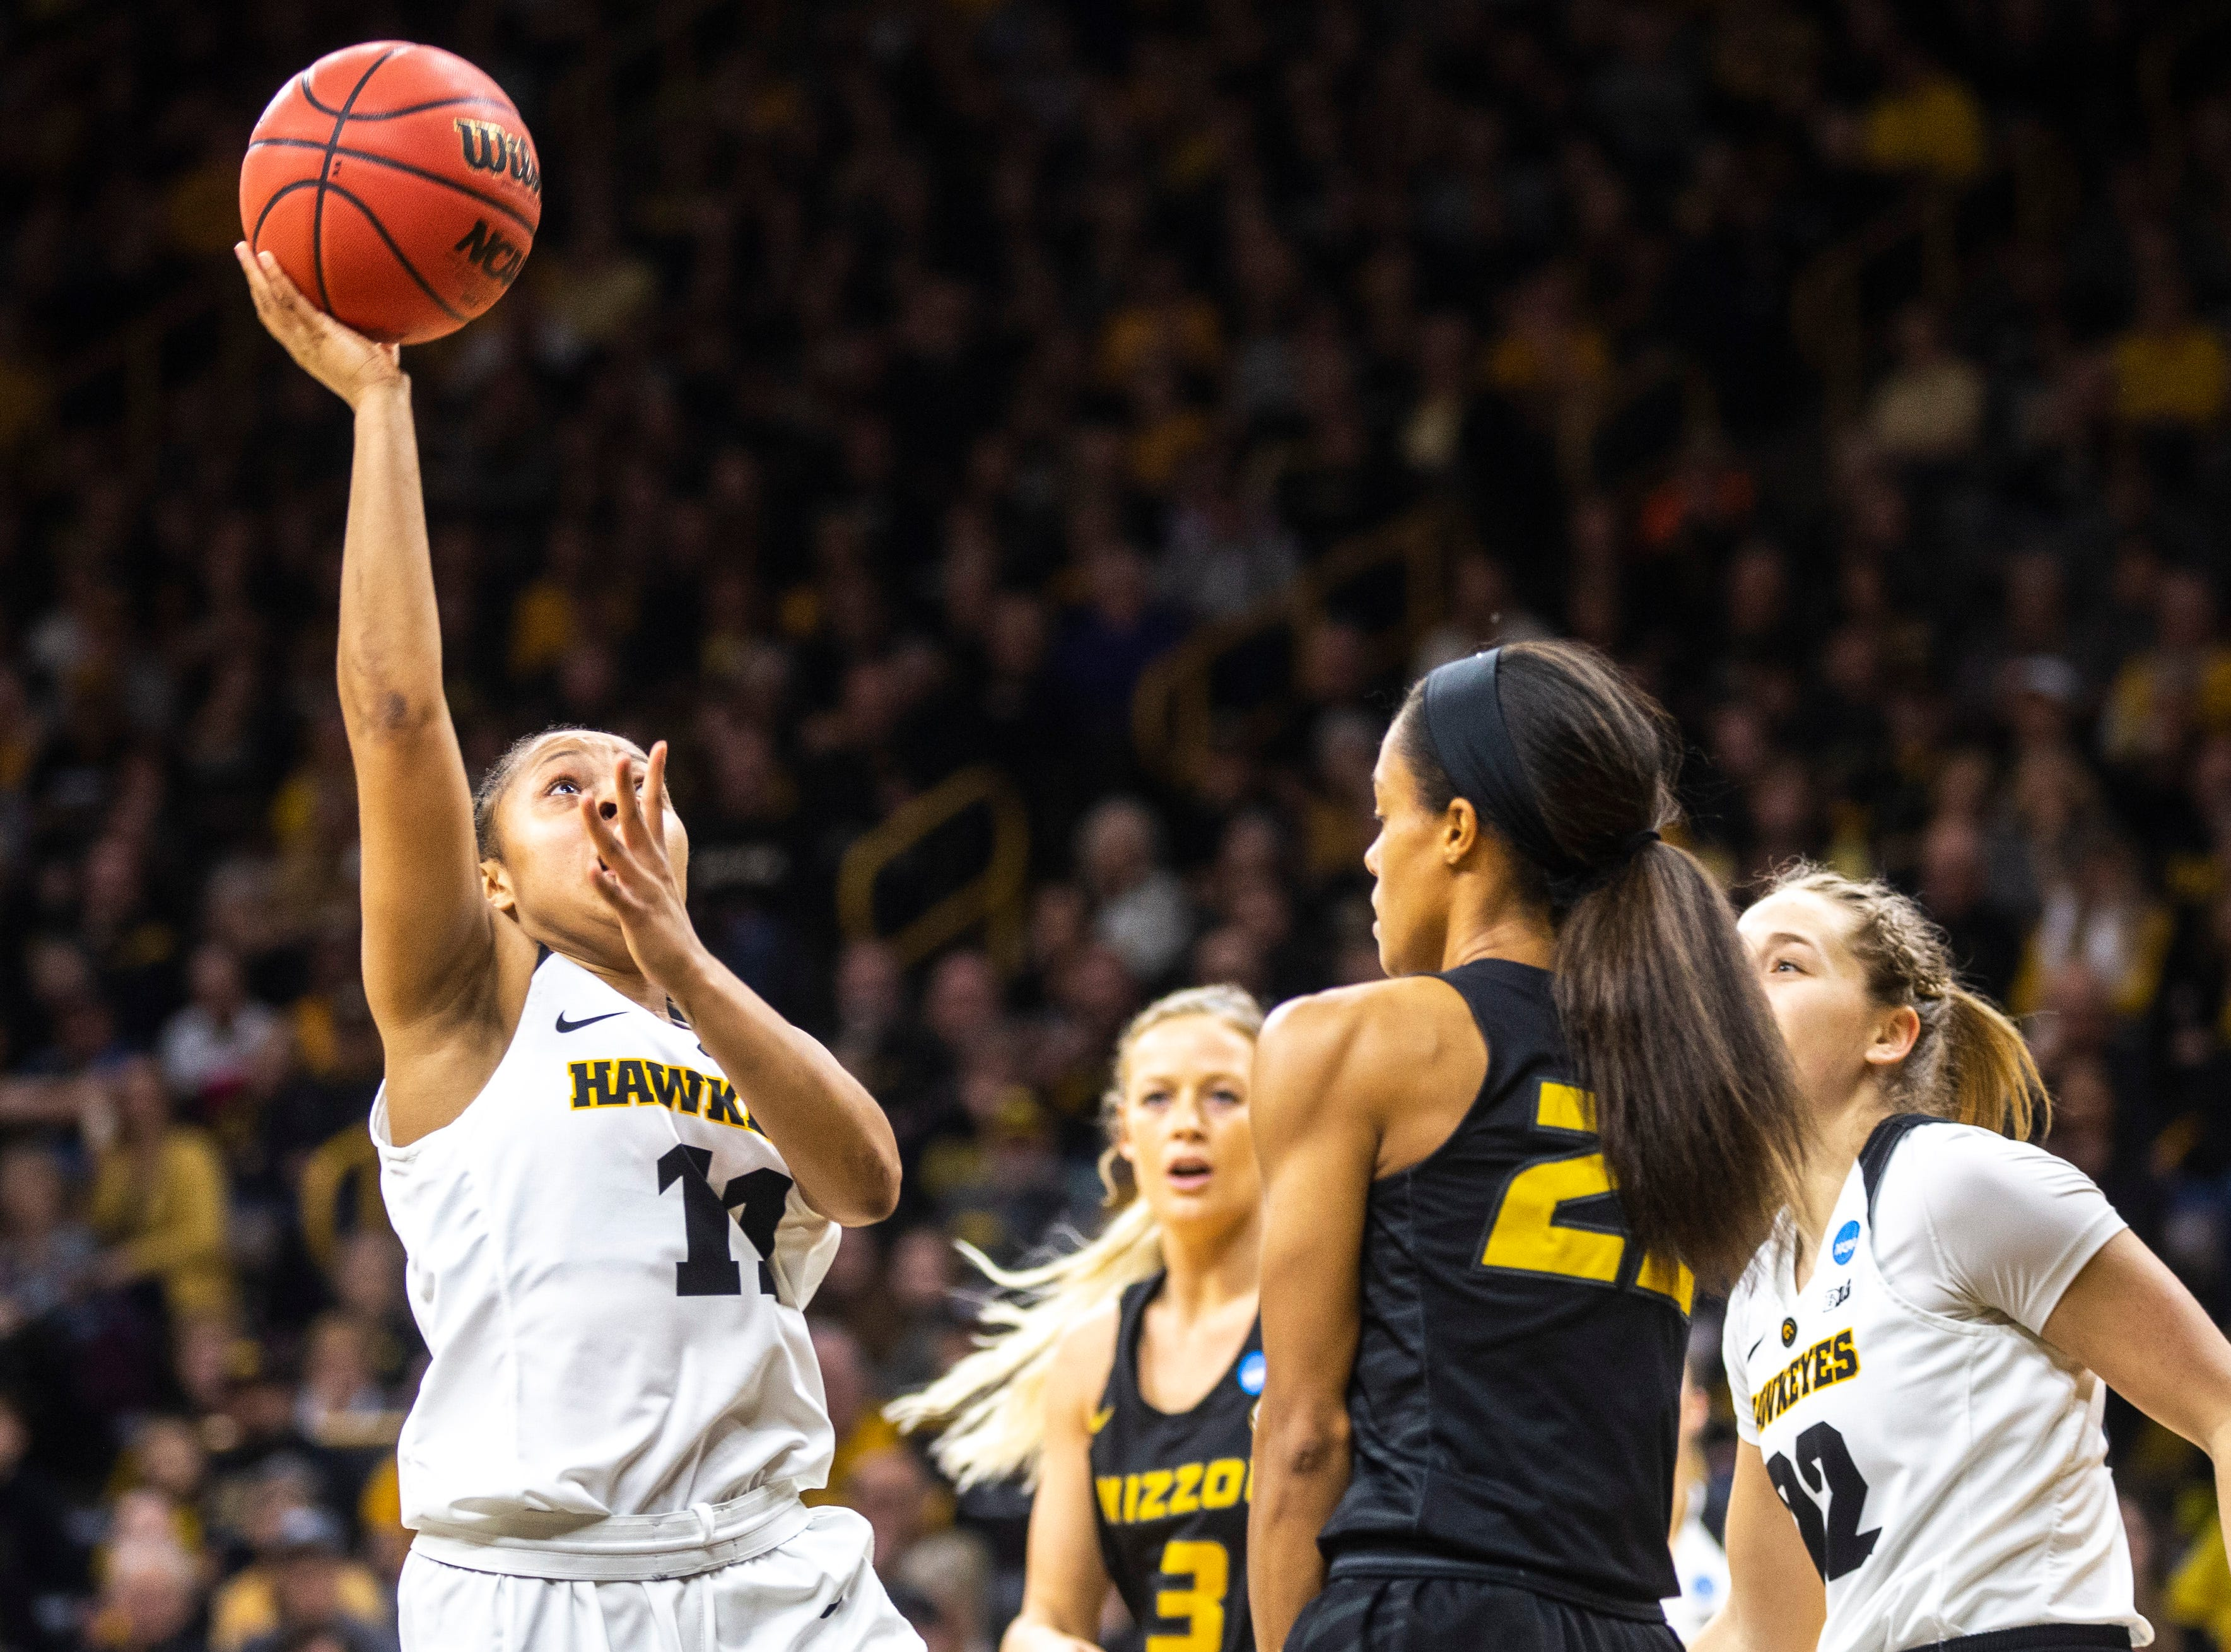 Iowa guard Tania Davis (11) shoots a basket against Missouri guard Jordan Roundtree (22) during a NCAA women's basketball tournament second-round game, Sunday, March 24, 2019, at Carver-Hawkeye Arena in Iowa City, Iowa.